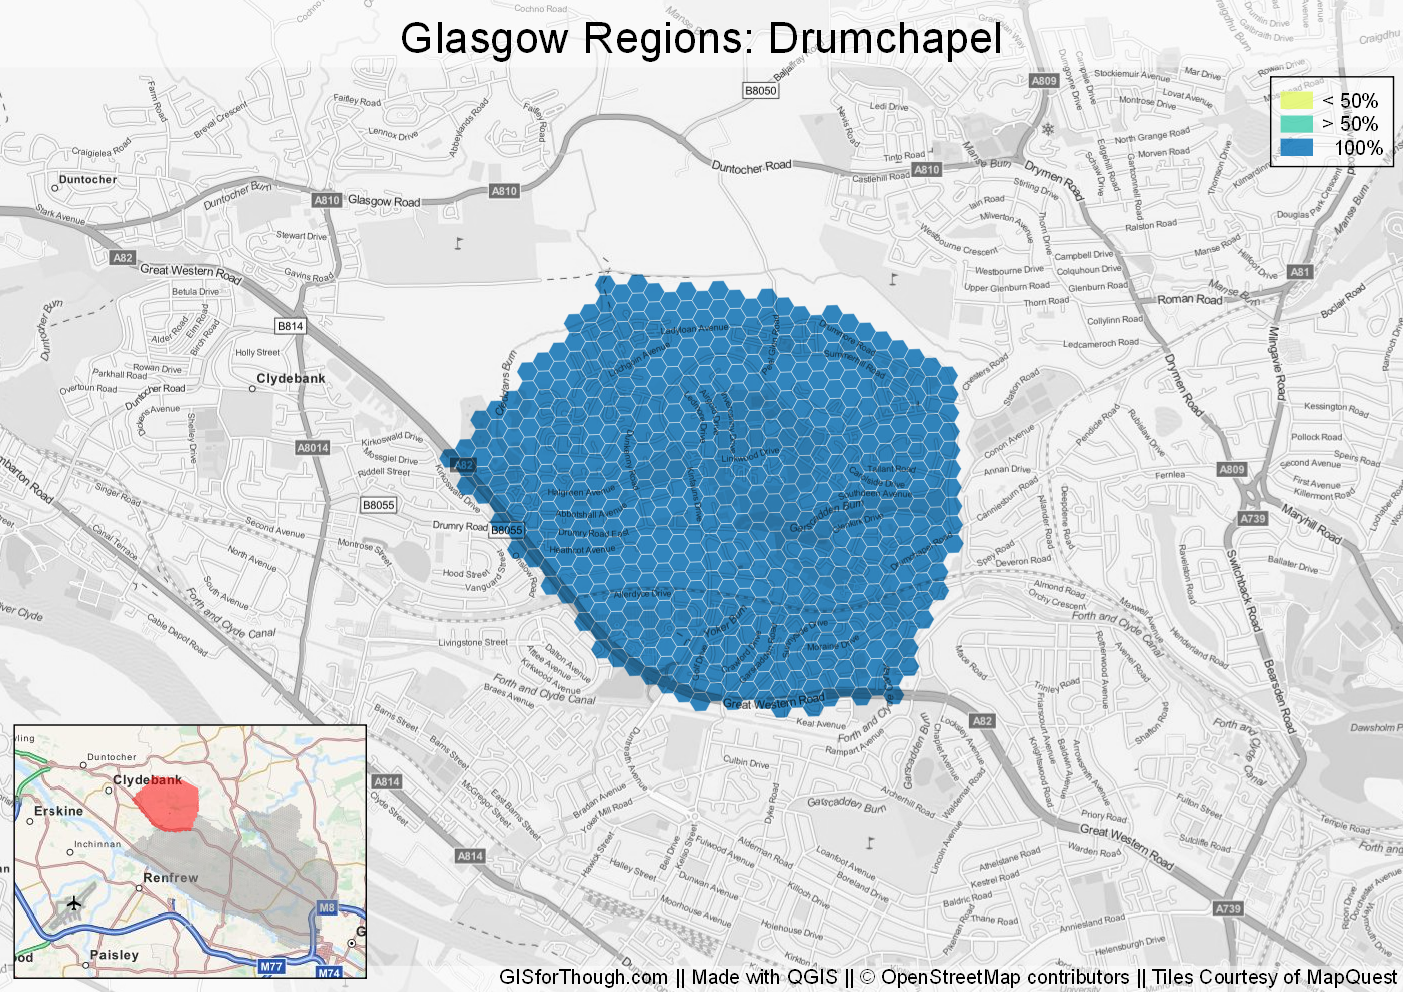 Drumchapel